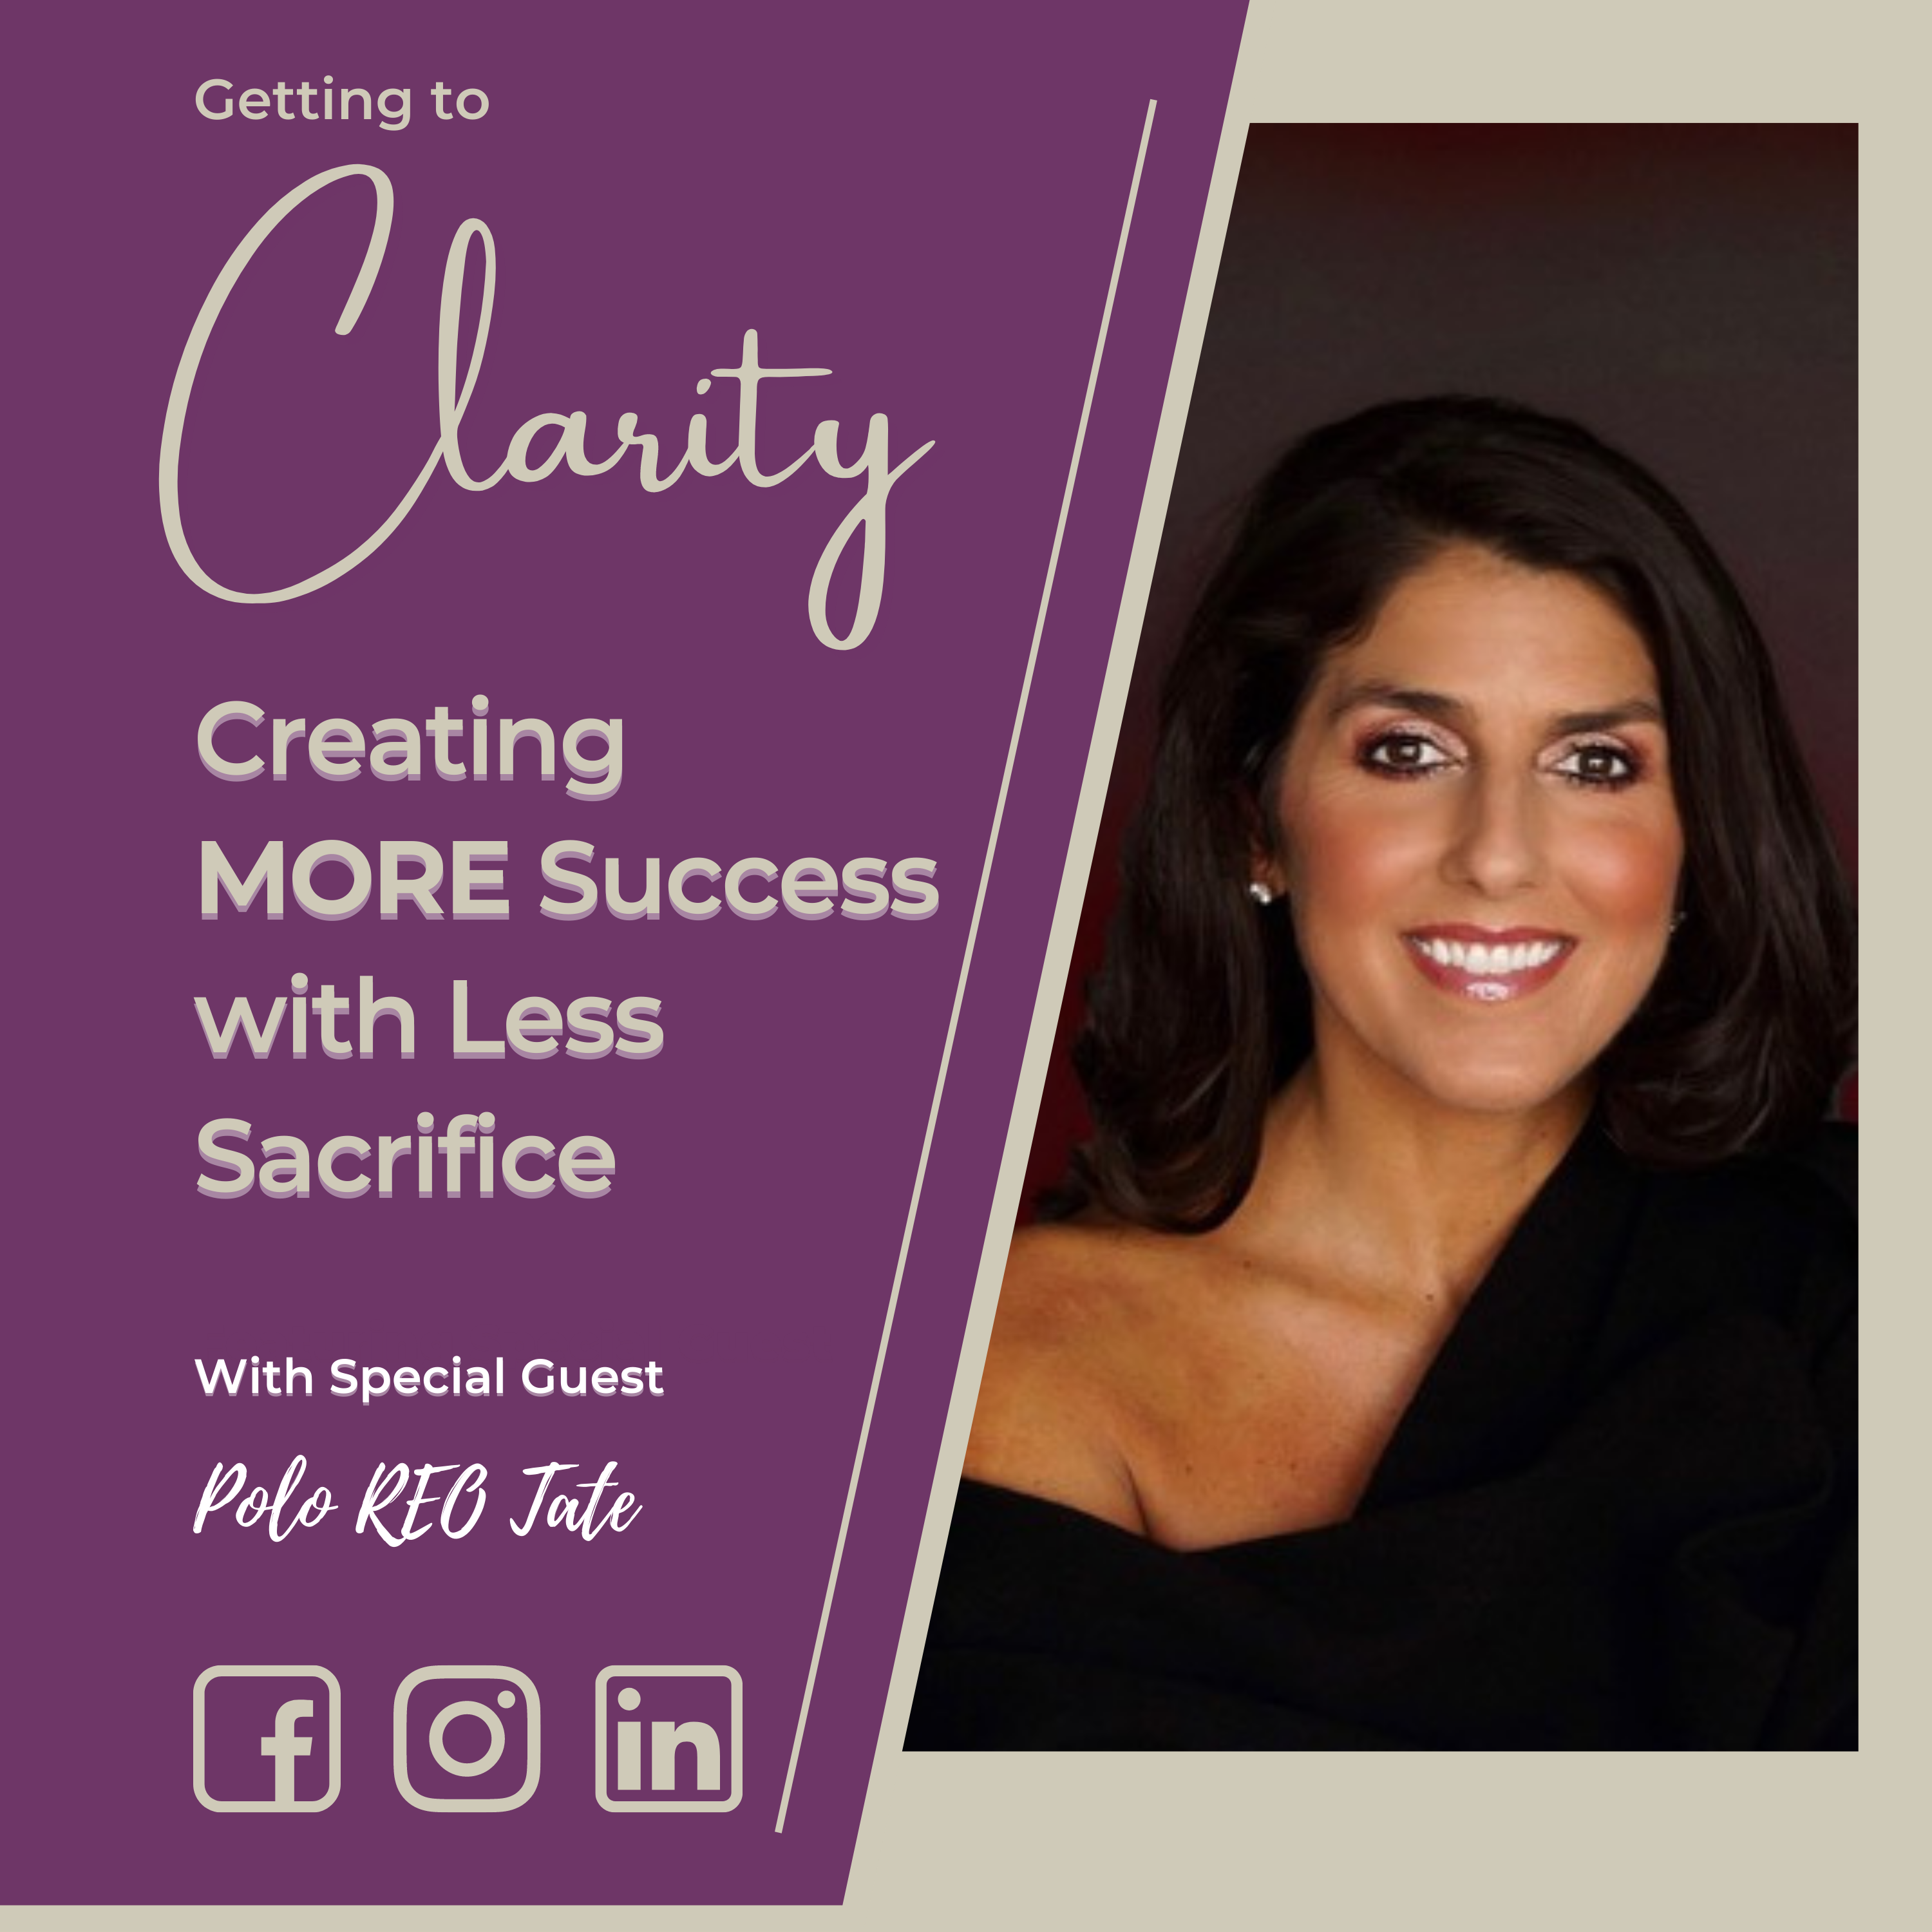 Polo REO Tate on the Getting to Clarity Podcast